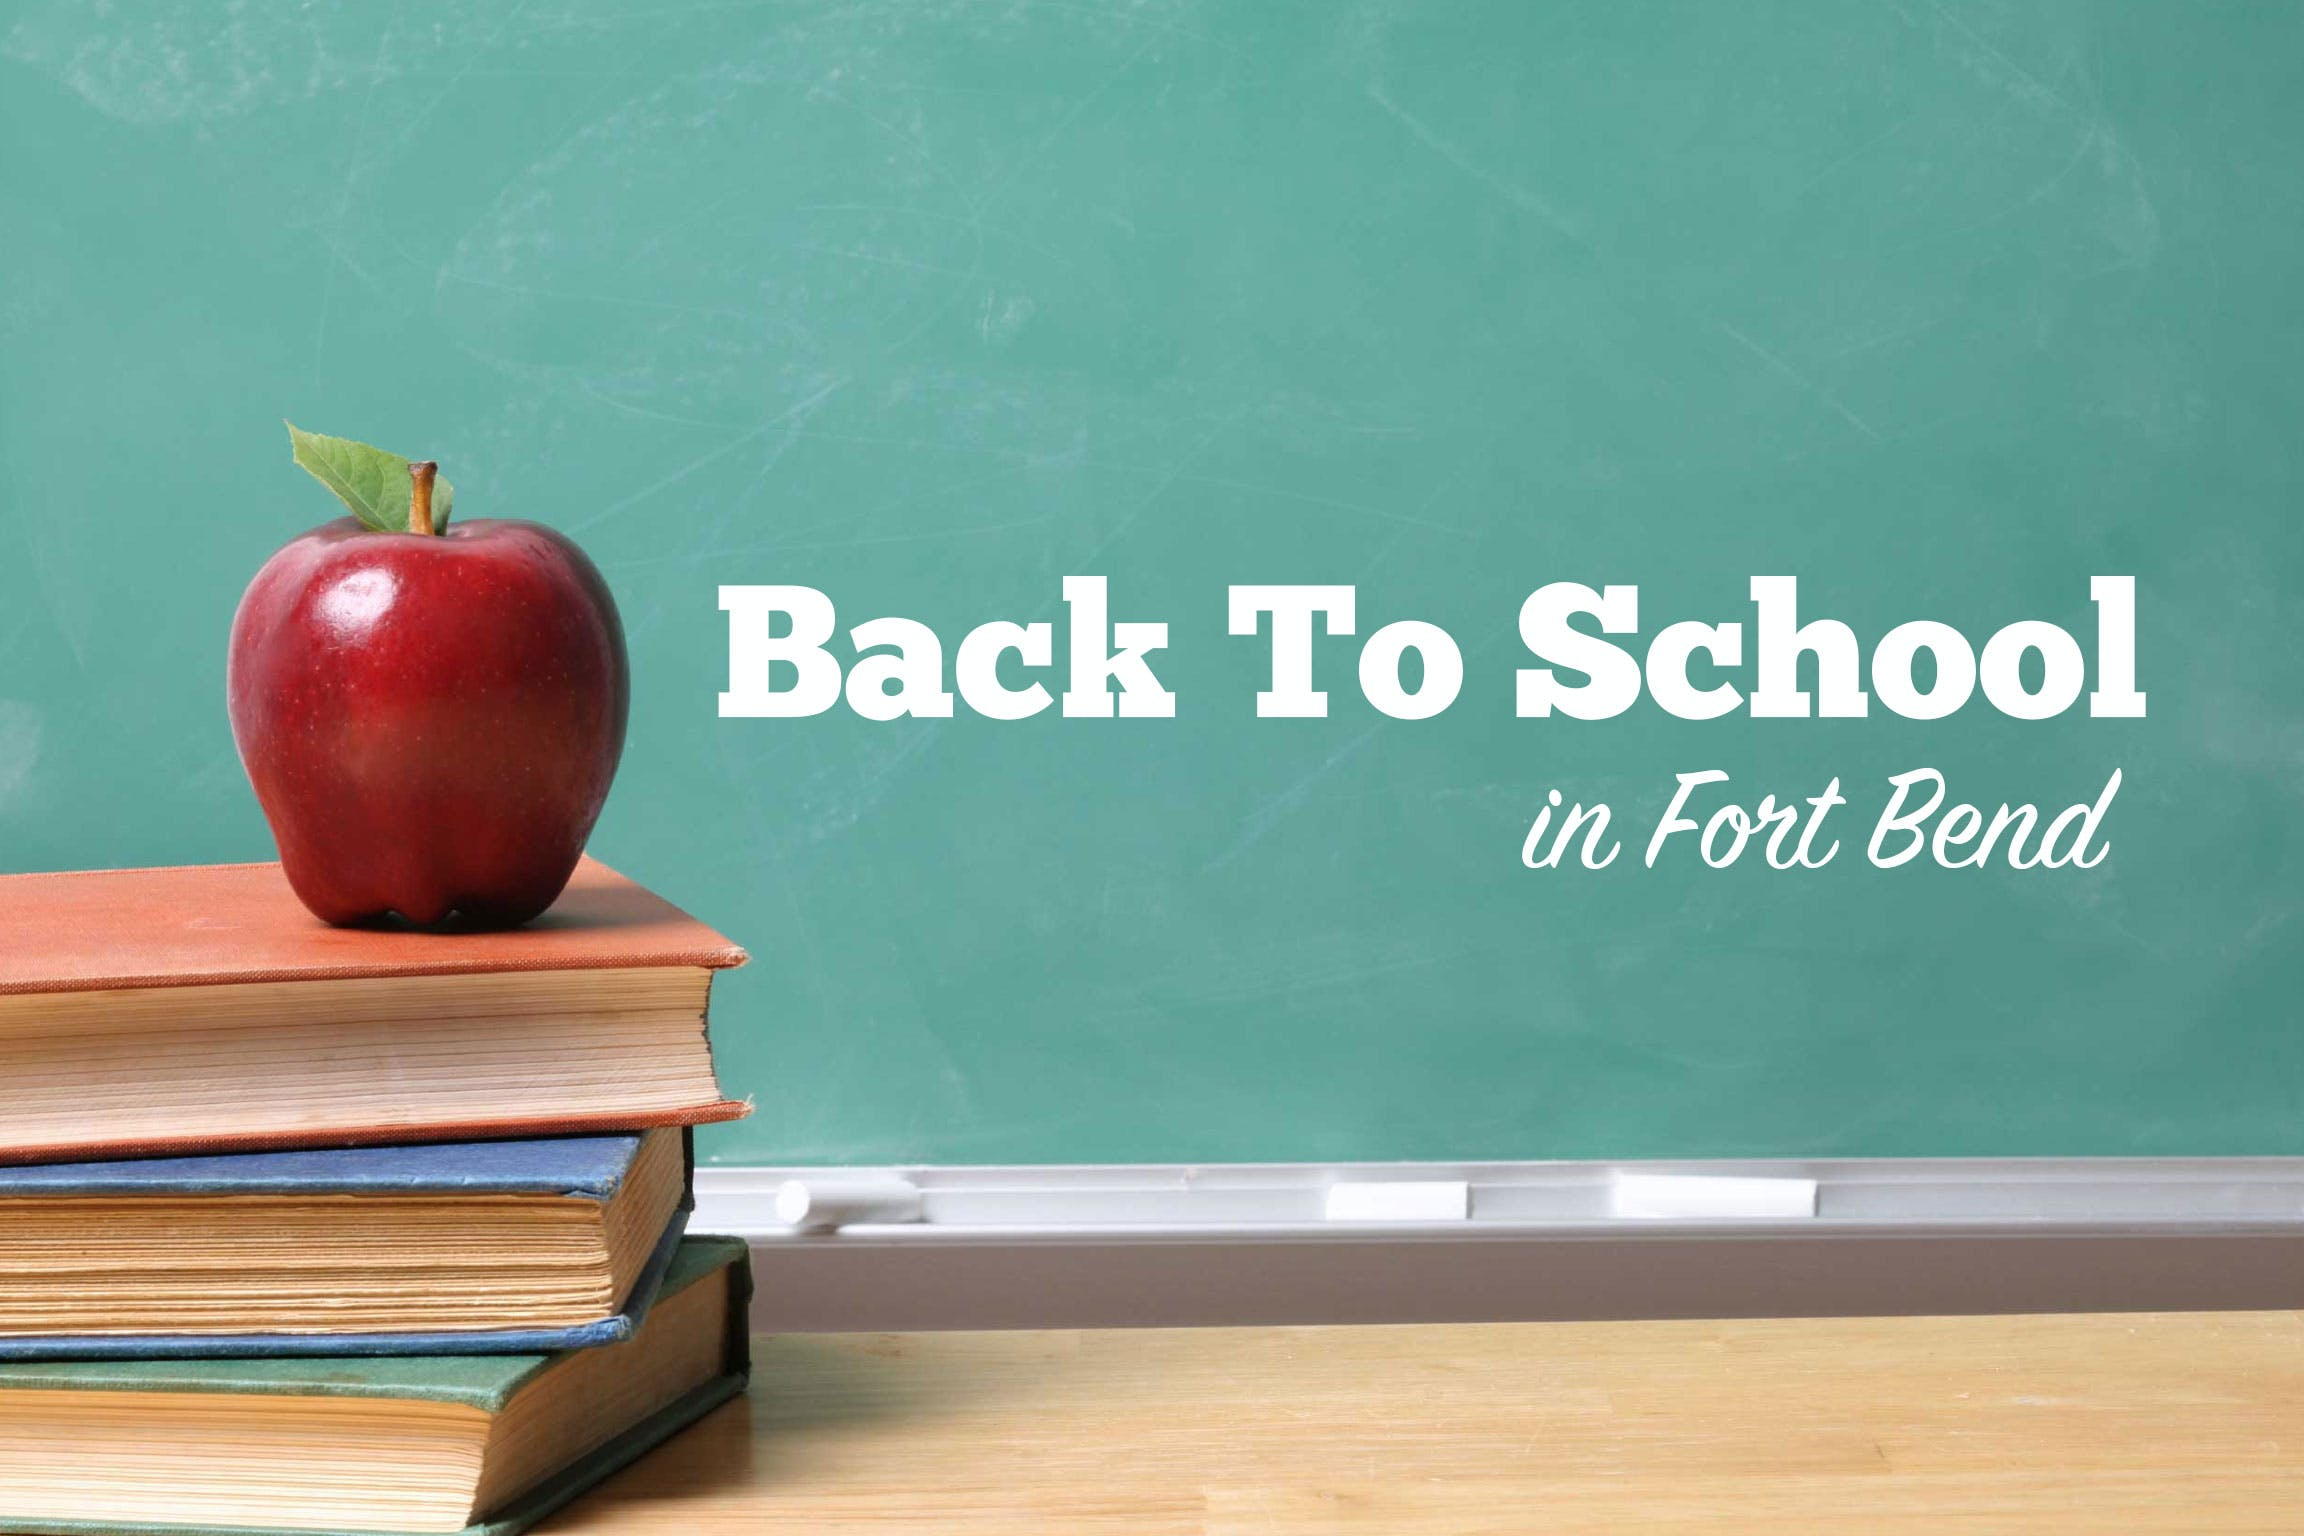 back-to-school-fort-bend-county-texas